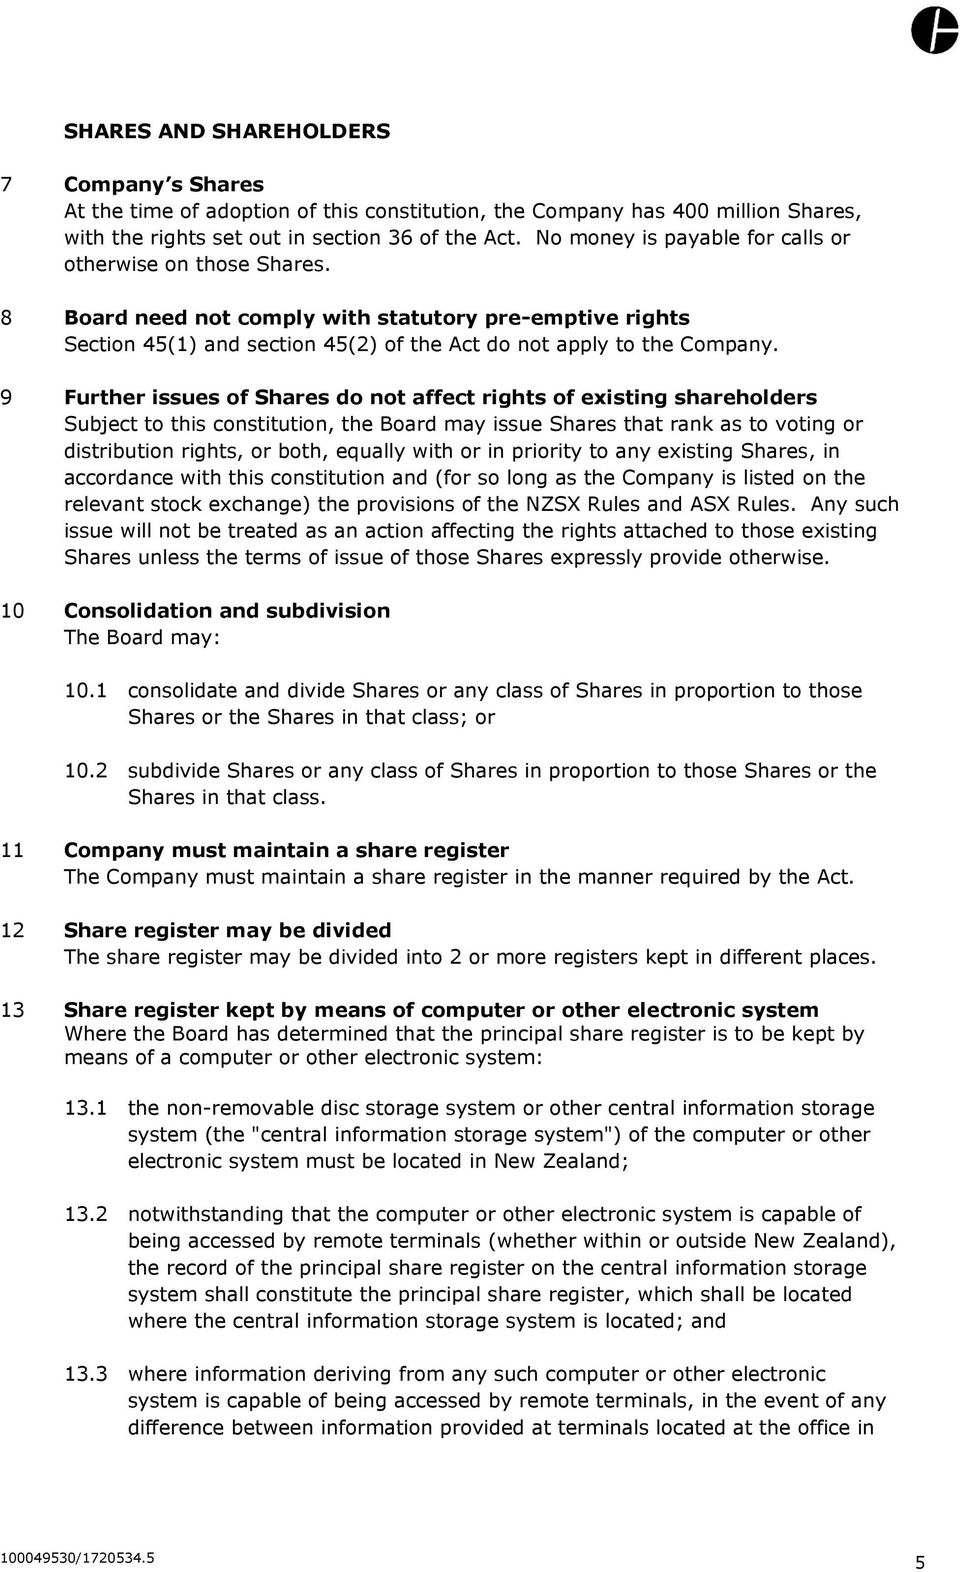 9 Further issues of Shares do not affect rights of existing shareholders Subject to this constitution, the Board may issue Shares that rank as to voting or distribution rights, or both, equally with